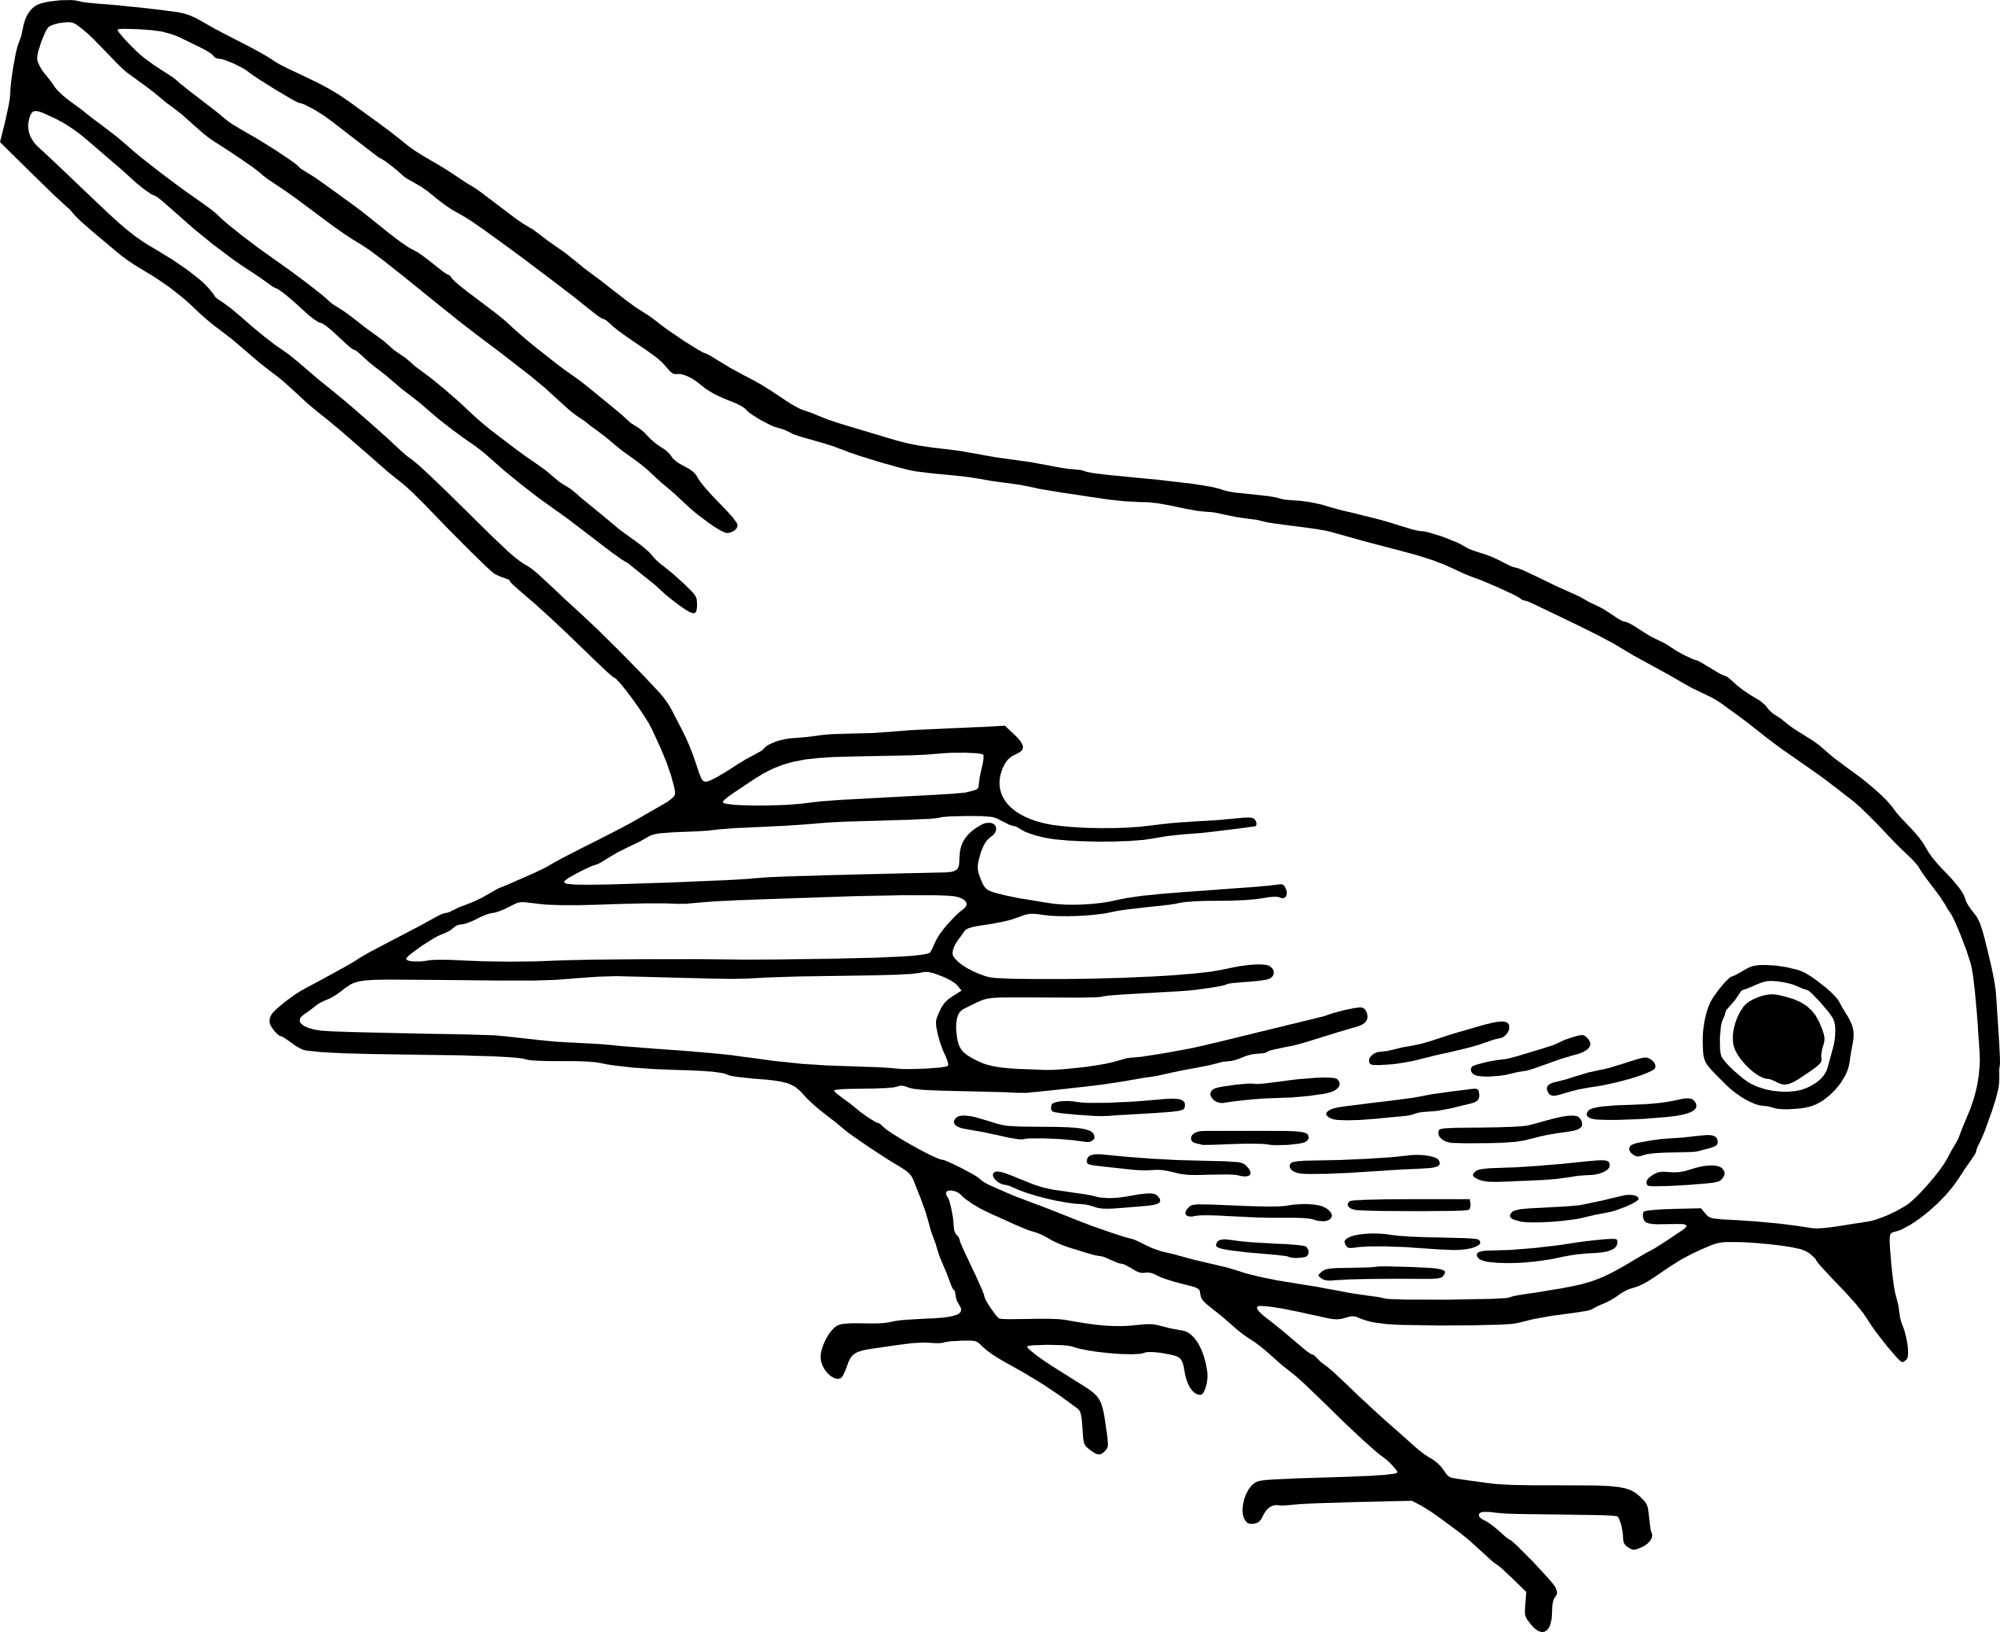 hight resolution of bird clip art line drawing at getdrawings com free